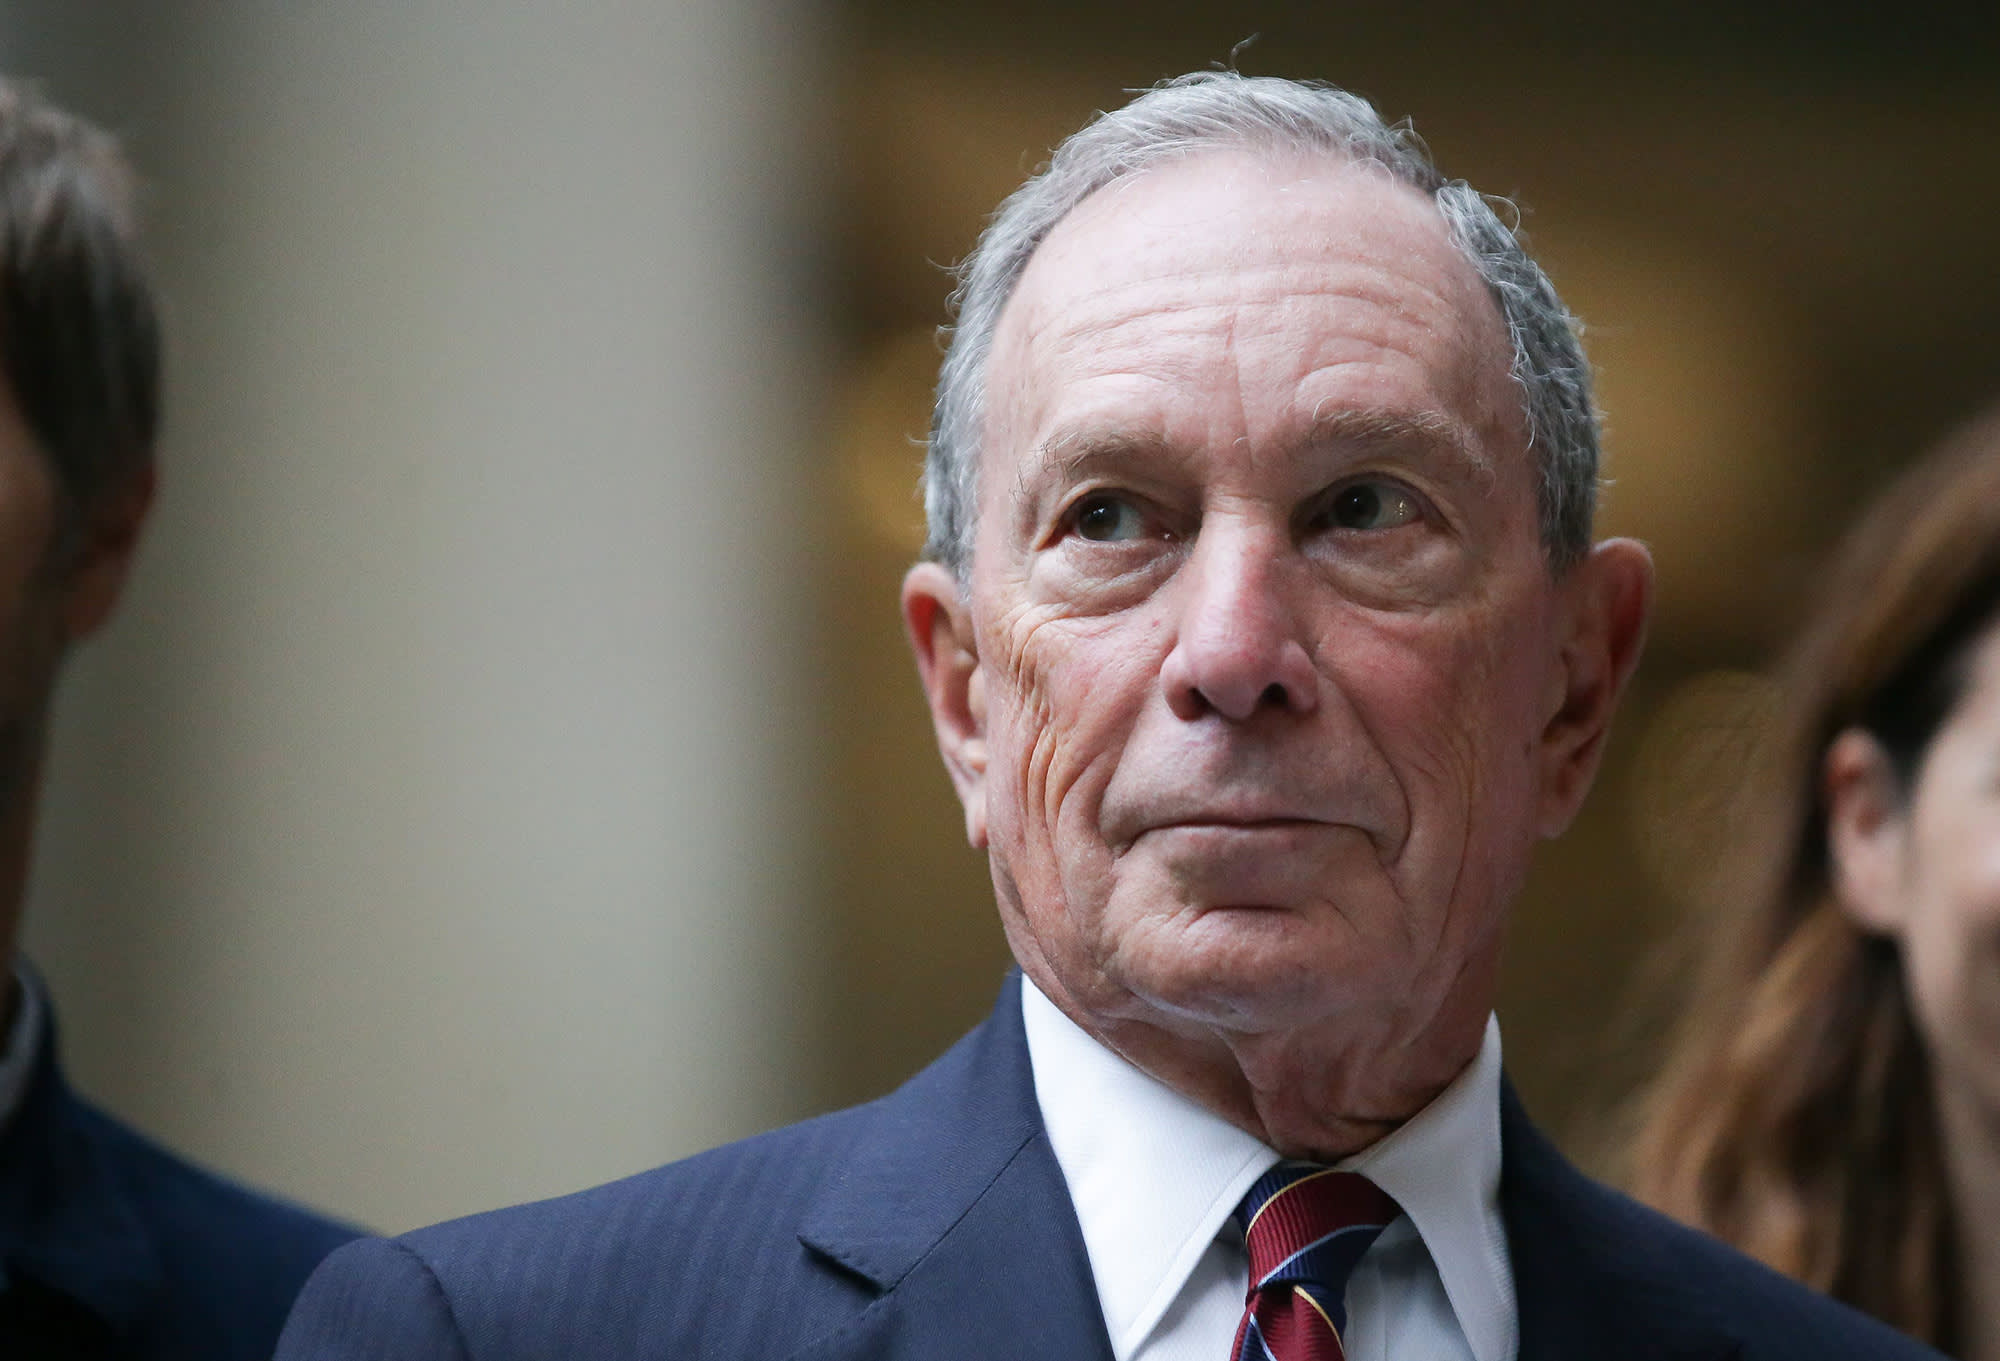 Mike Bloomberg launches bid for 2020 Democratic presidential nomination